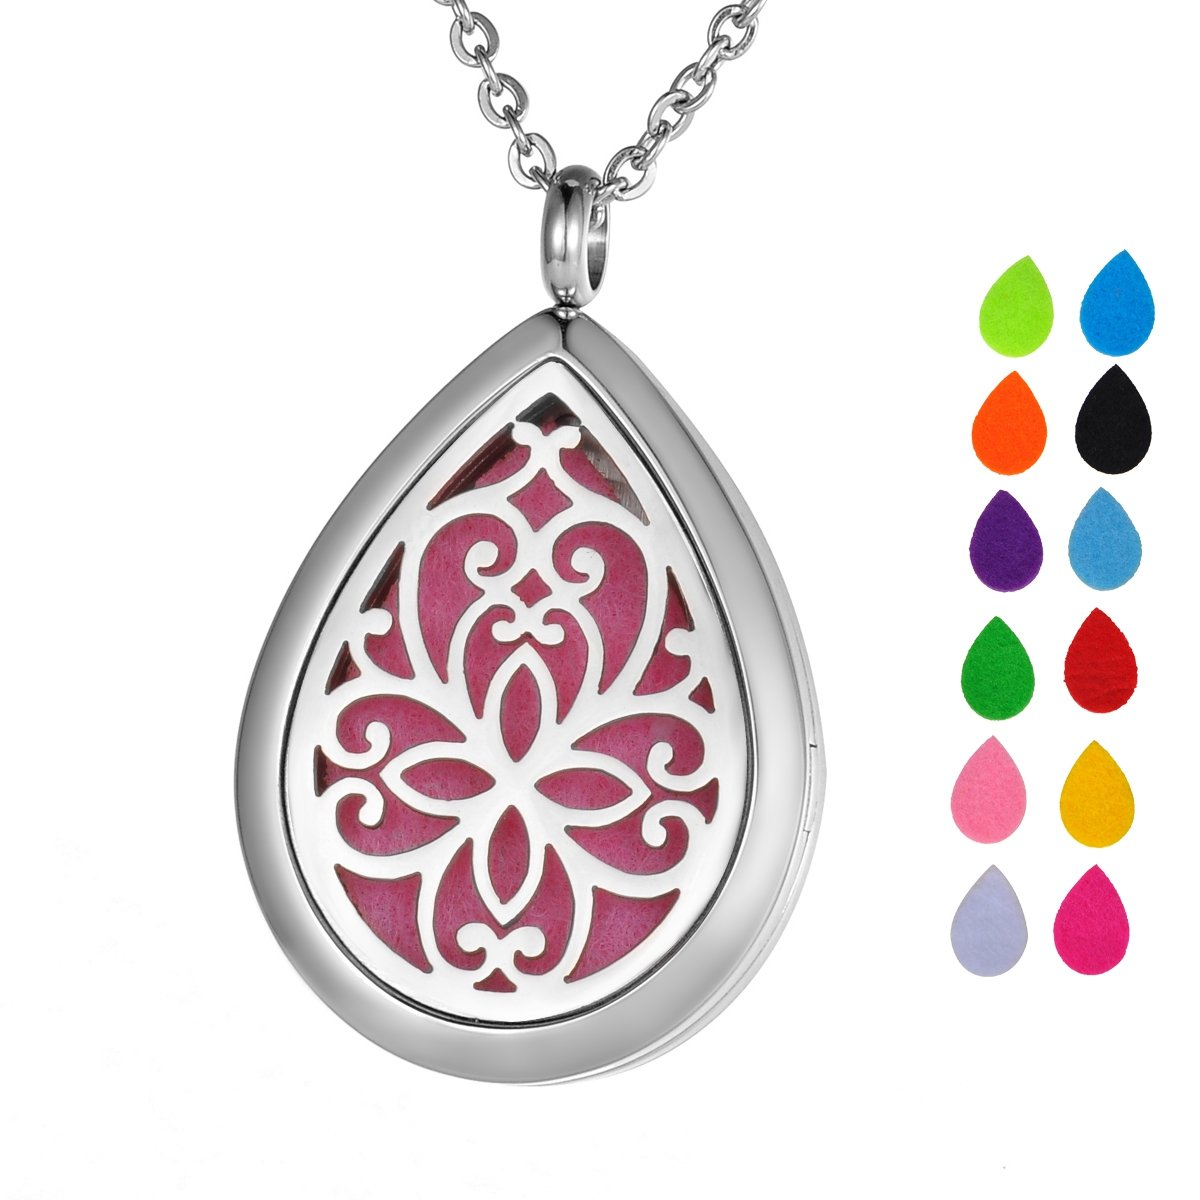 Valyria Stainless Steel Butterfly Teardrop Essential Oil Diffuser Necklace Aromatherapy